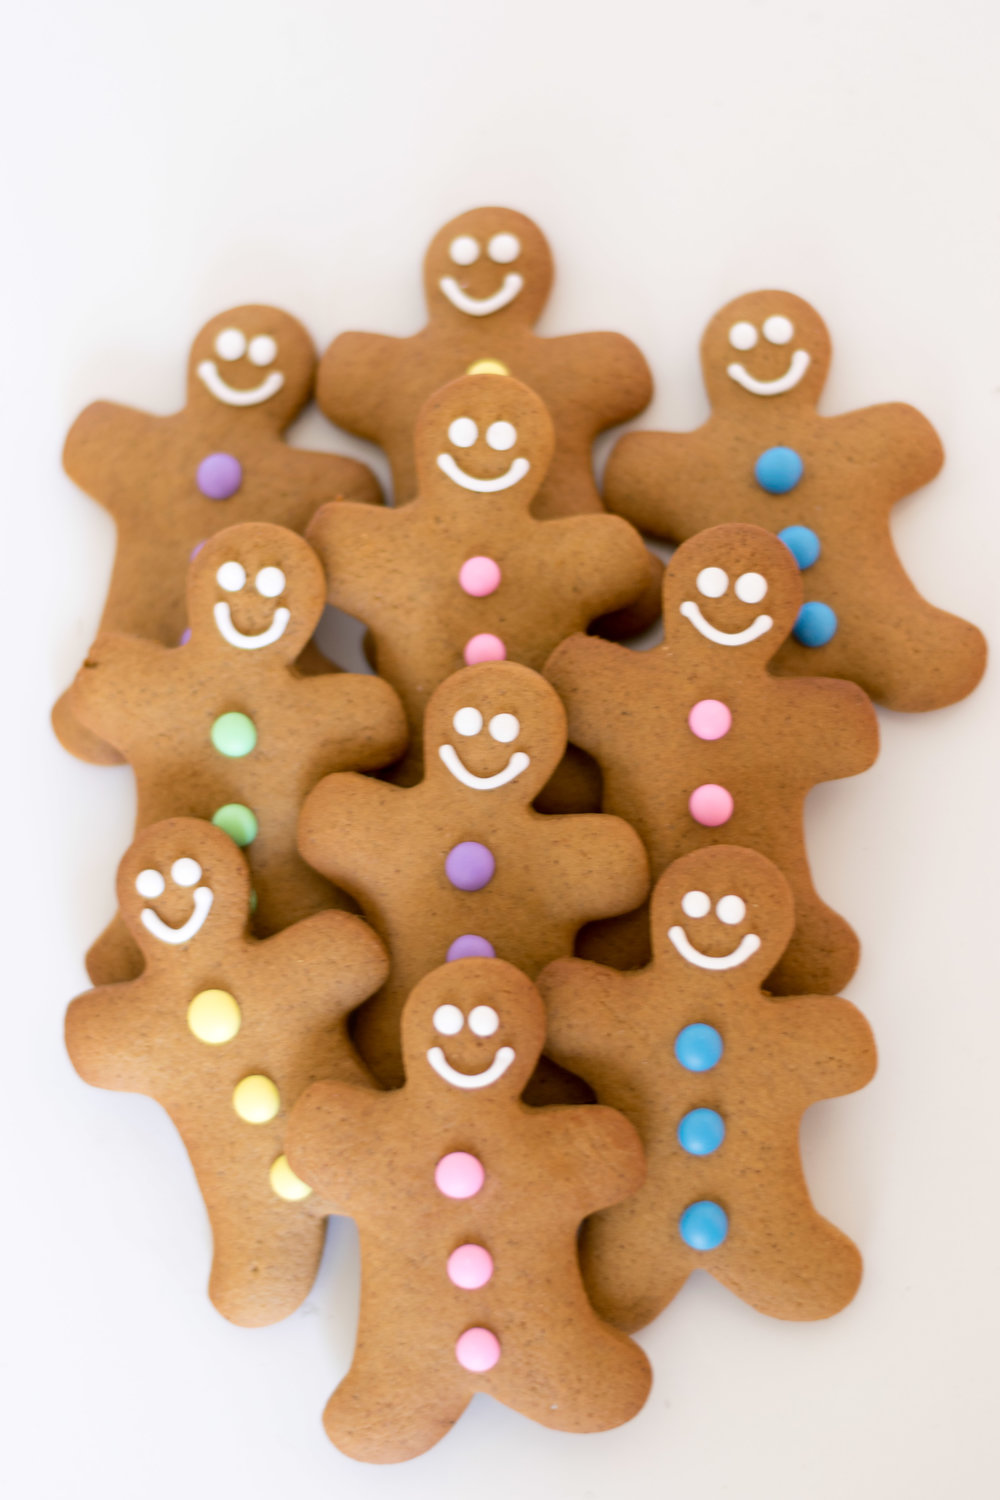 Gingerbread Men with pastel buttons $1.35